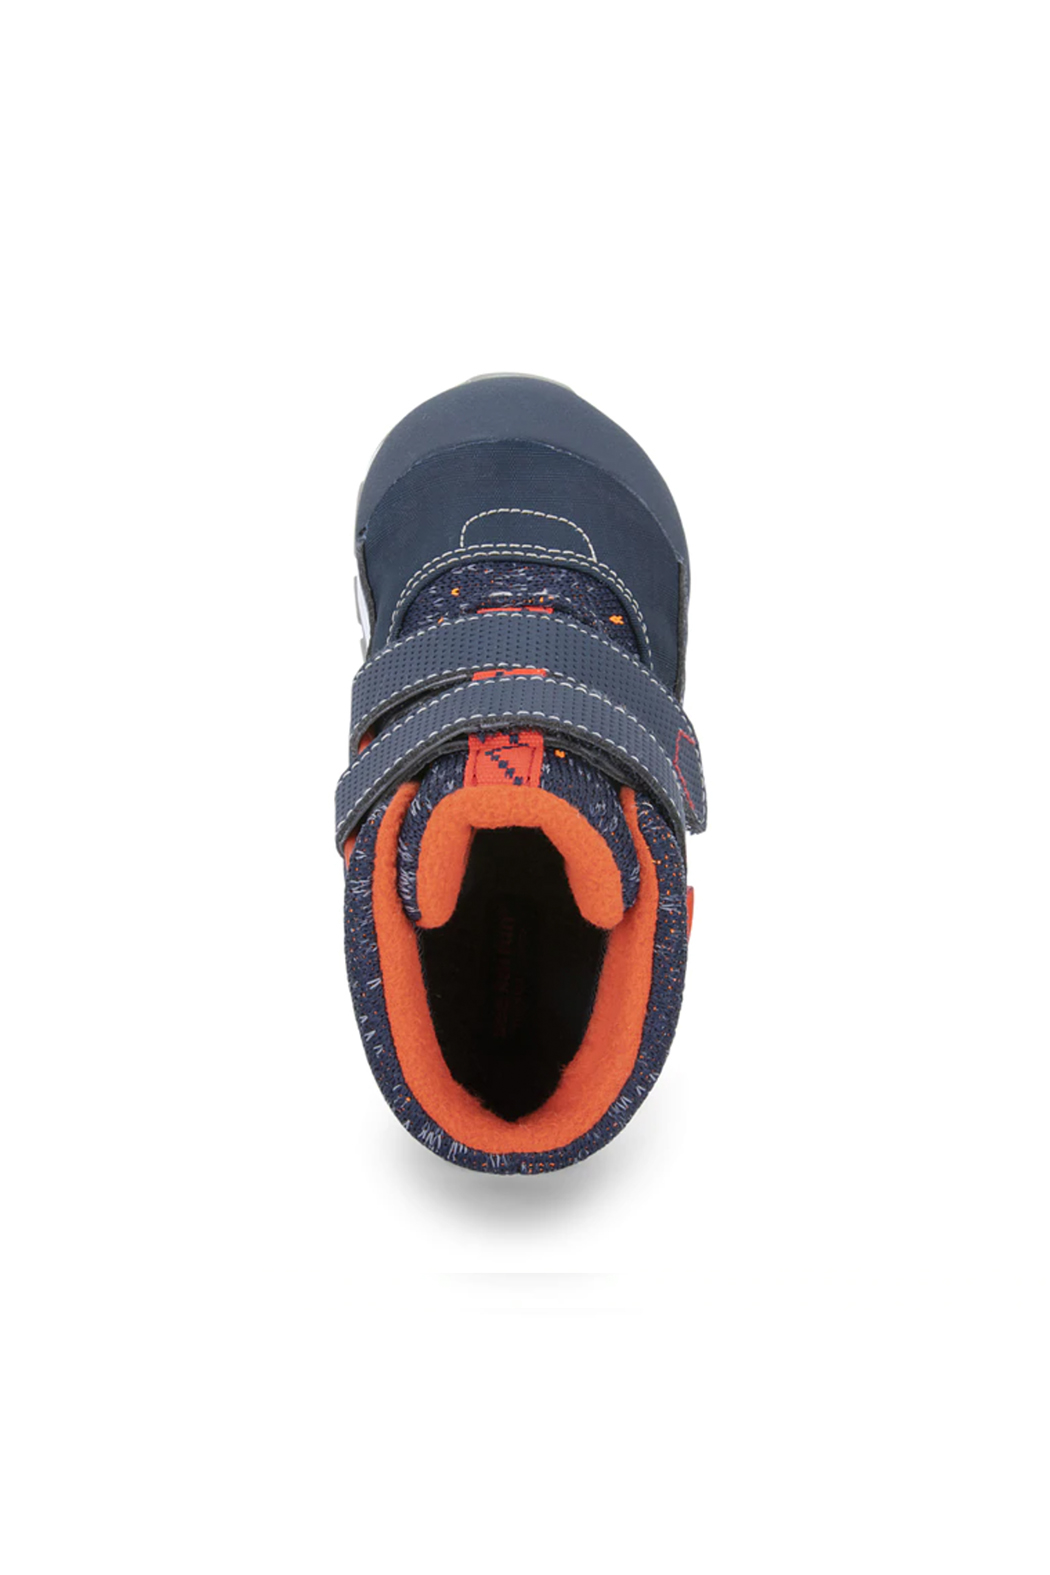 See Kai Run Atlas Waterproof Insulated Boot - Navy/Red - Front Full Image